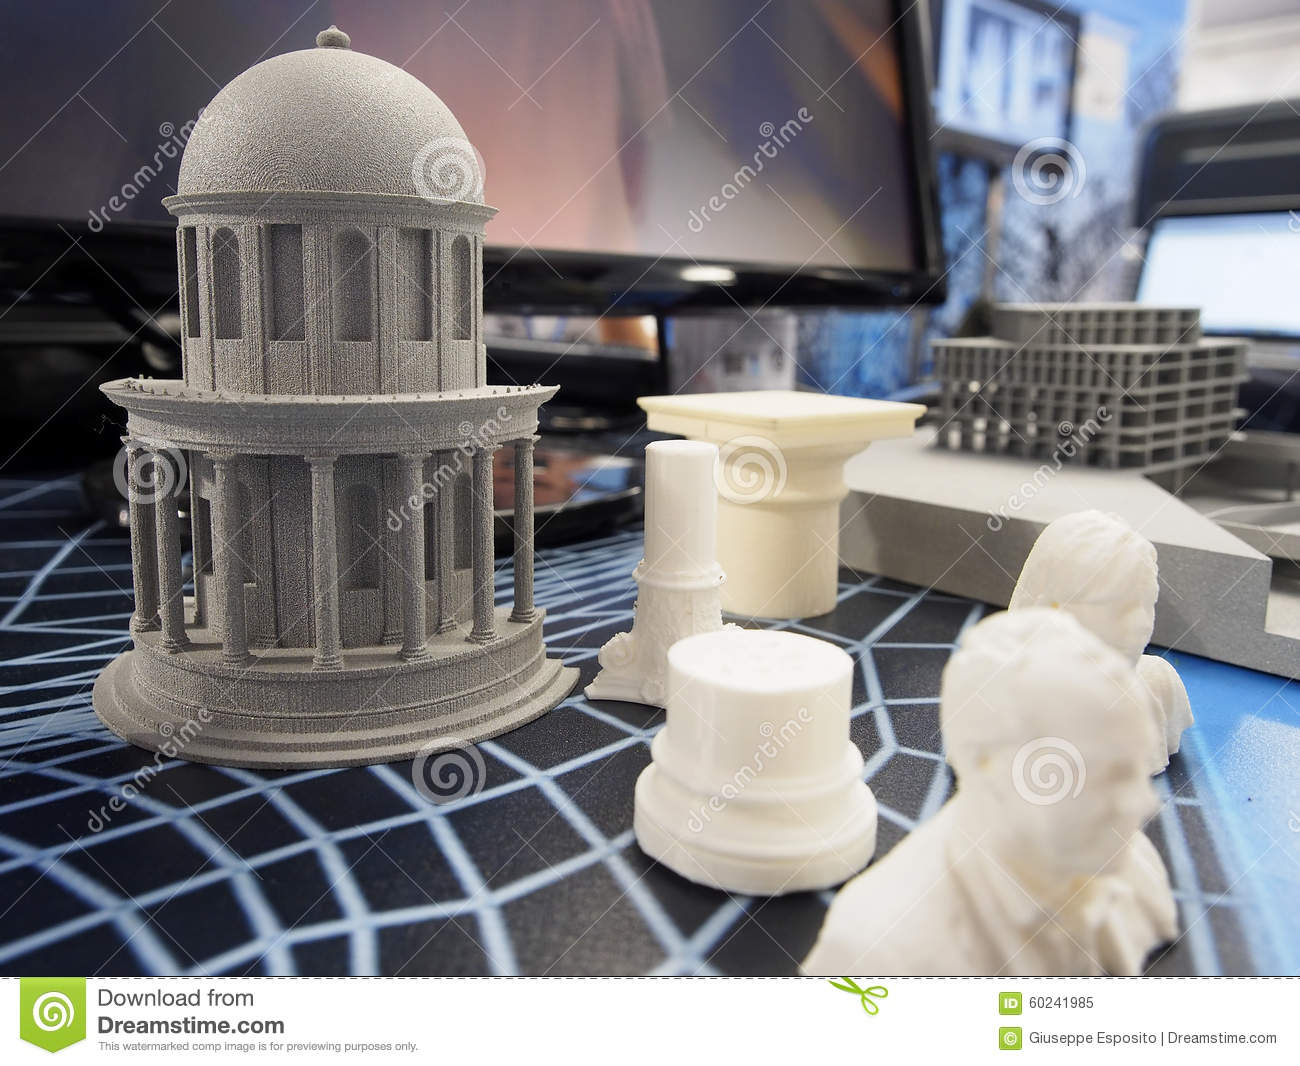 Objects from a 3d printer stock image image of tech for When was 3d printing invented